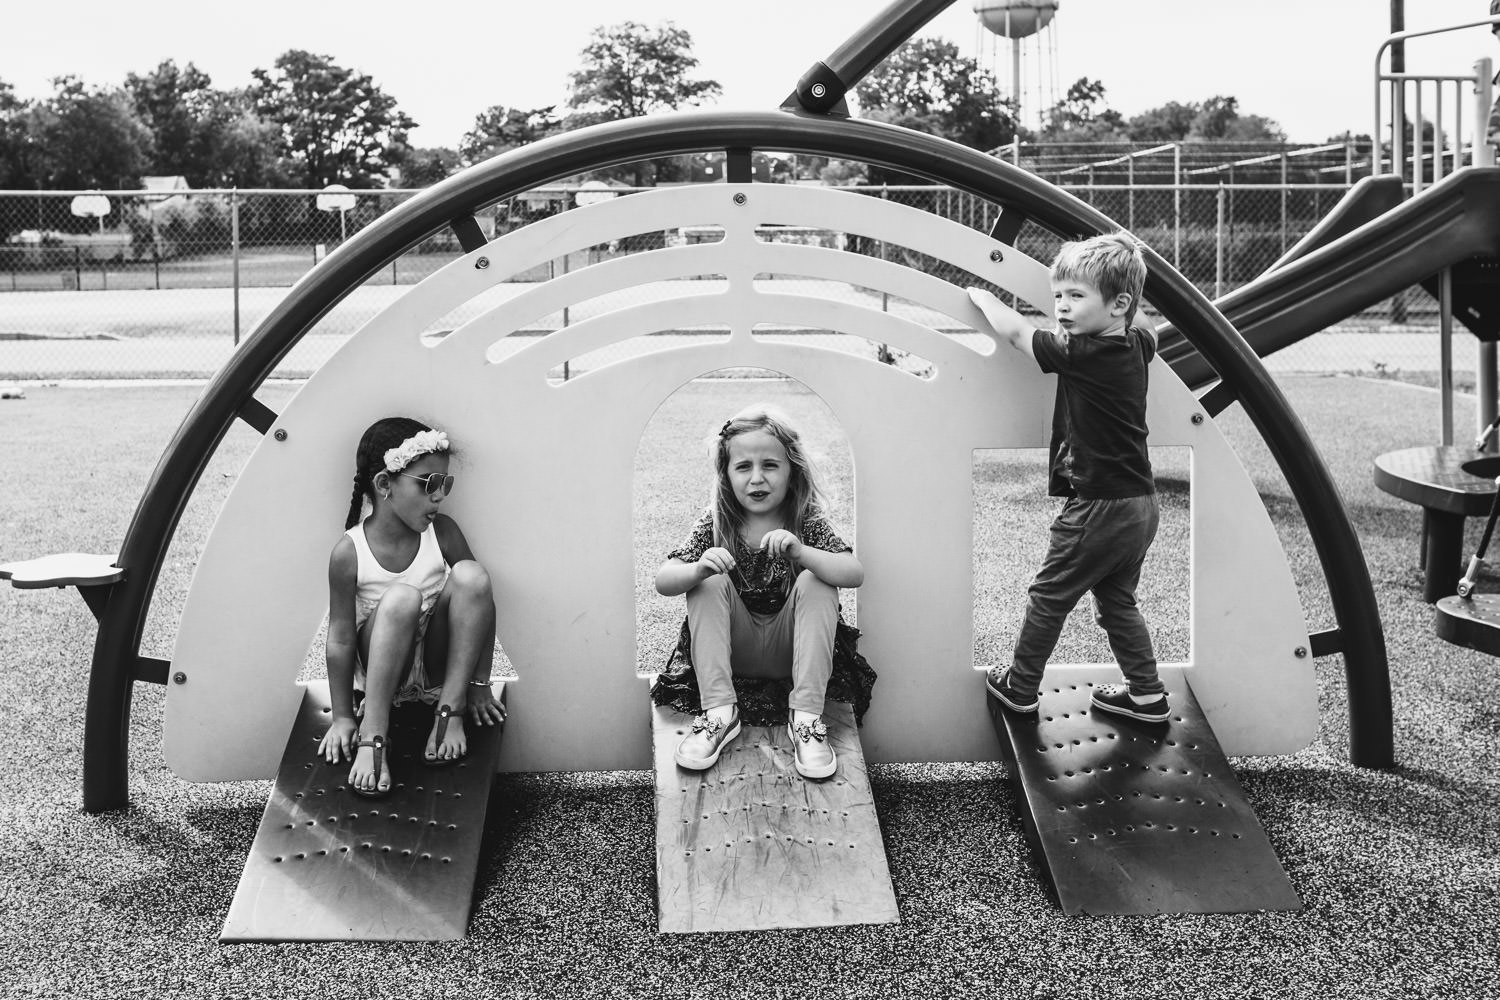 Some children play on a play structure after school.